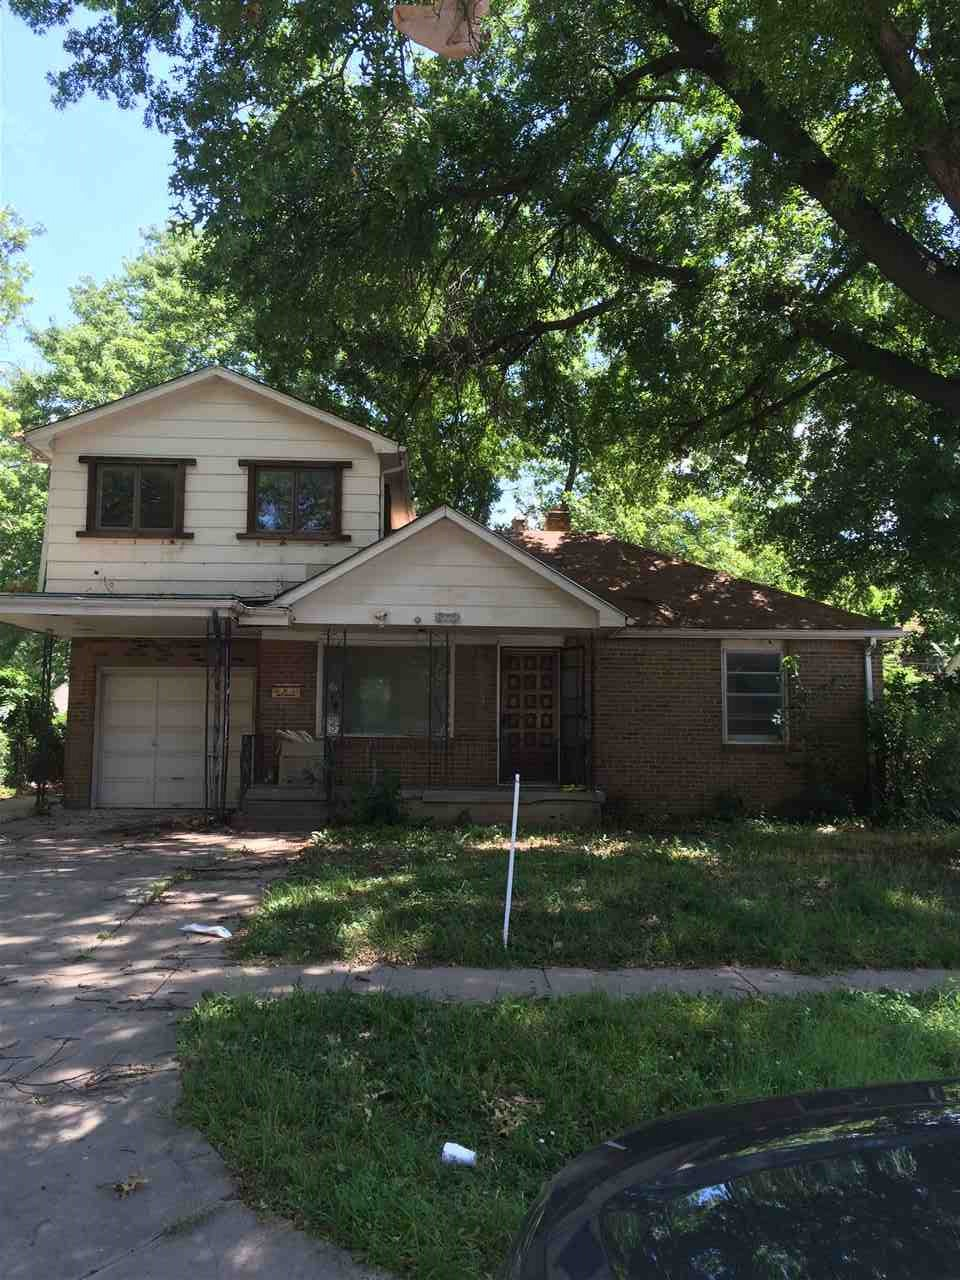 822 S Christine St, Wichita, KS 67218